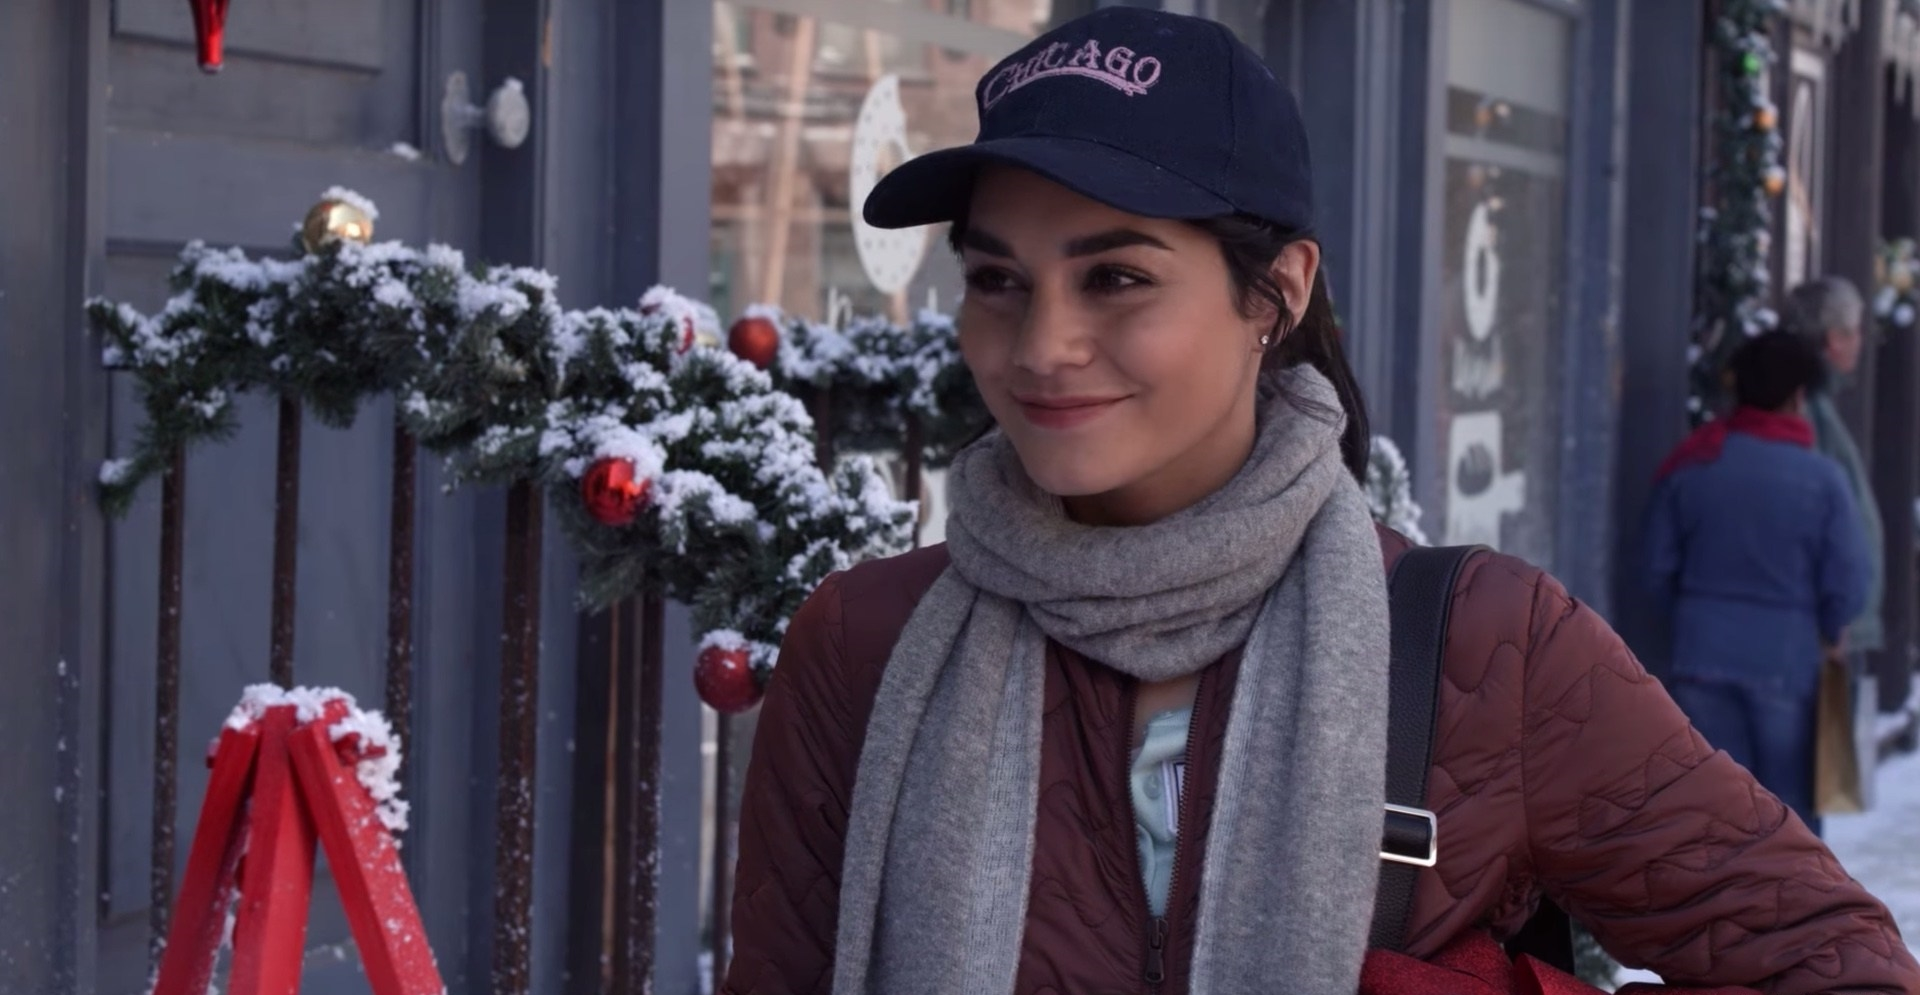 trailer-for-netflixs-vanessa-hudgens-christmas-movie-the-princess-switch-social